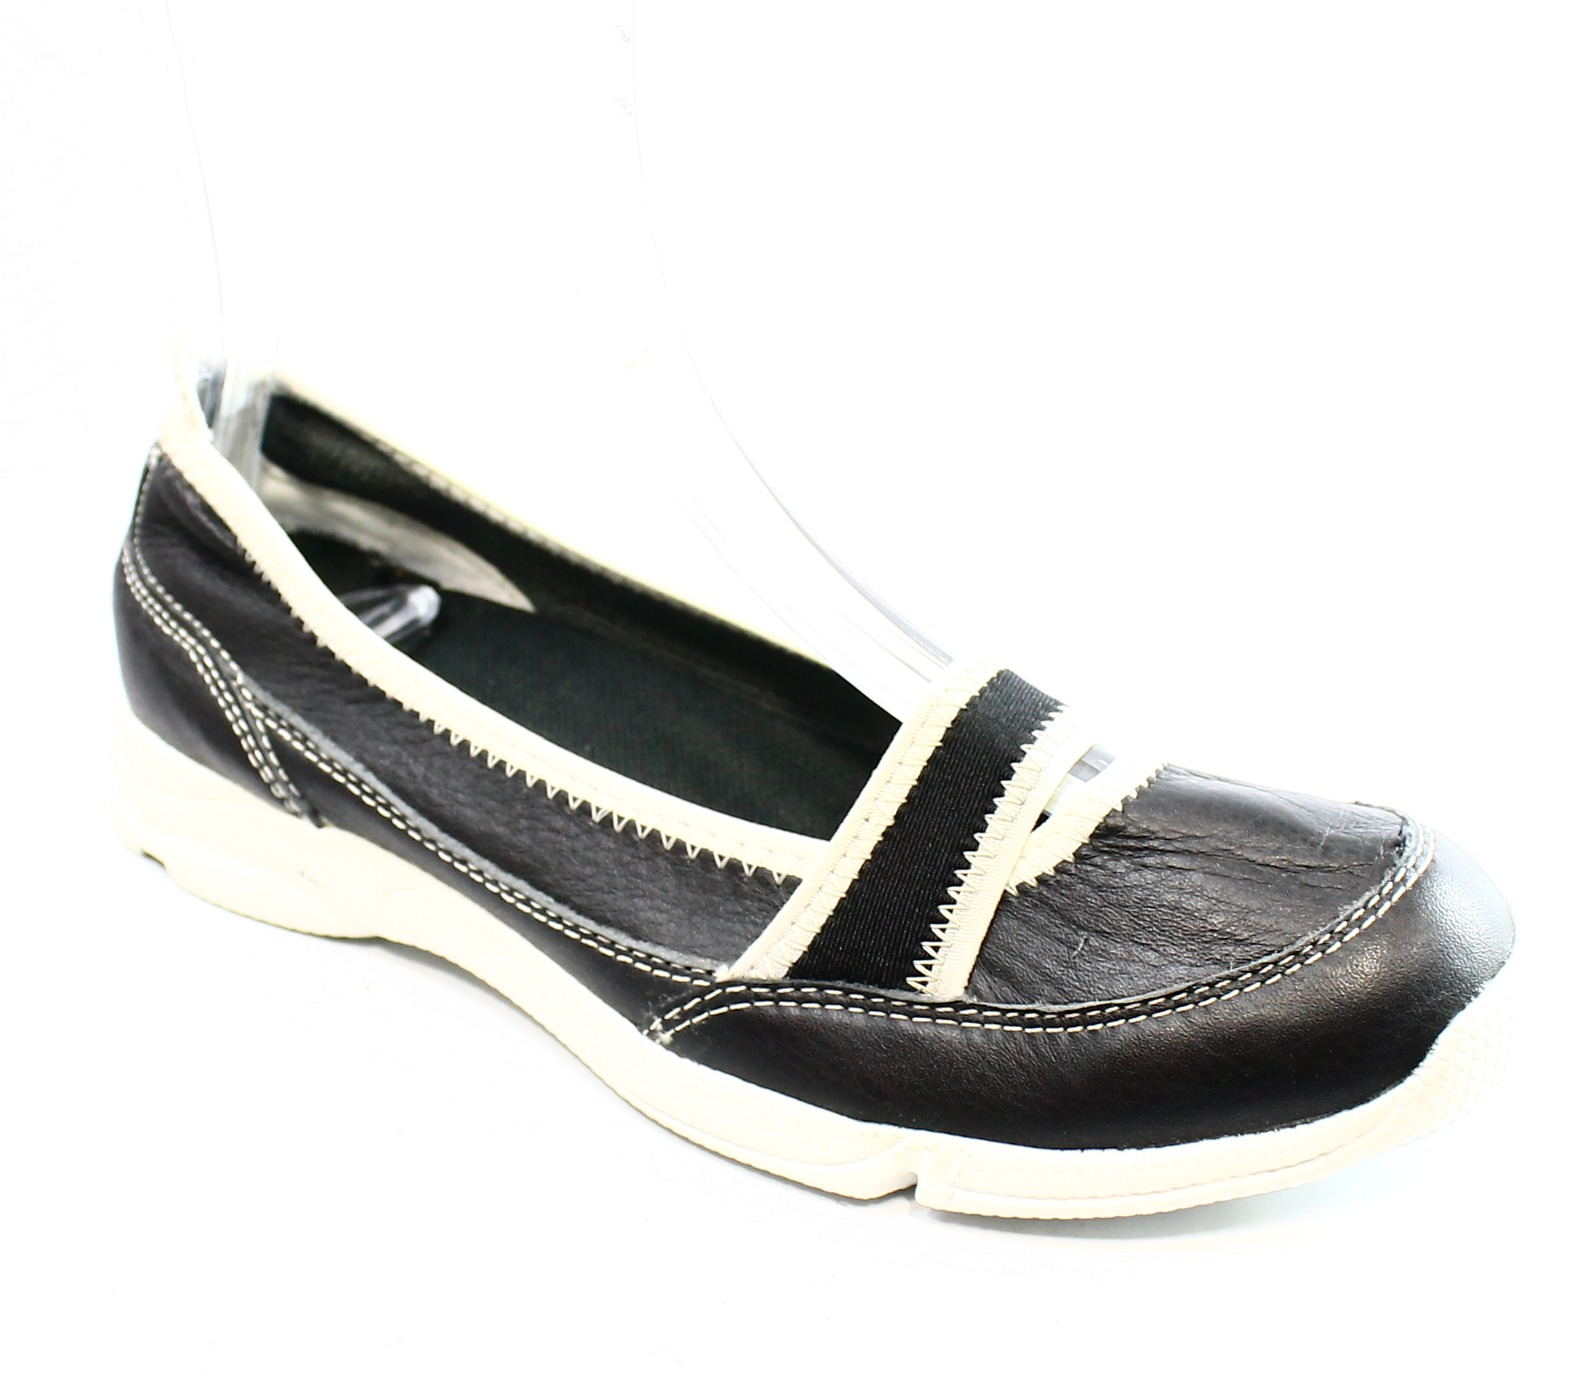 rockport new black white s shoes us size 5 loafers